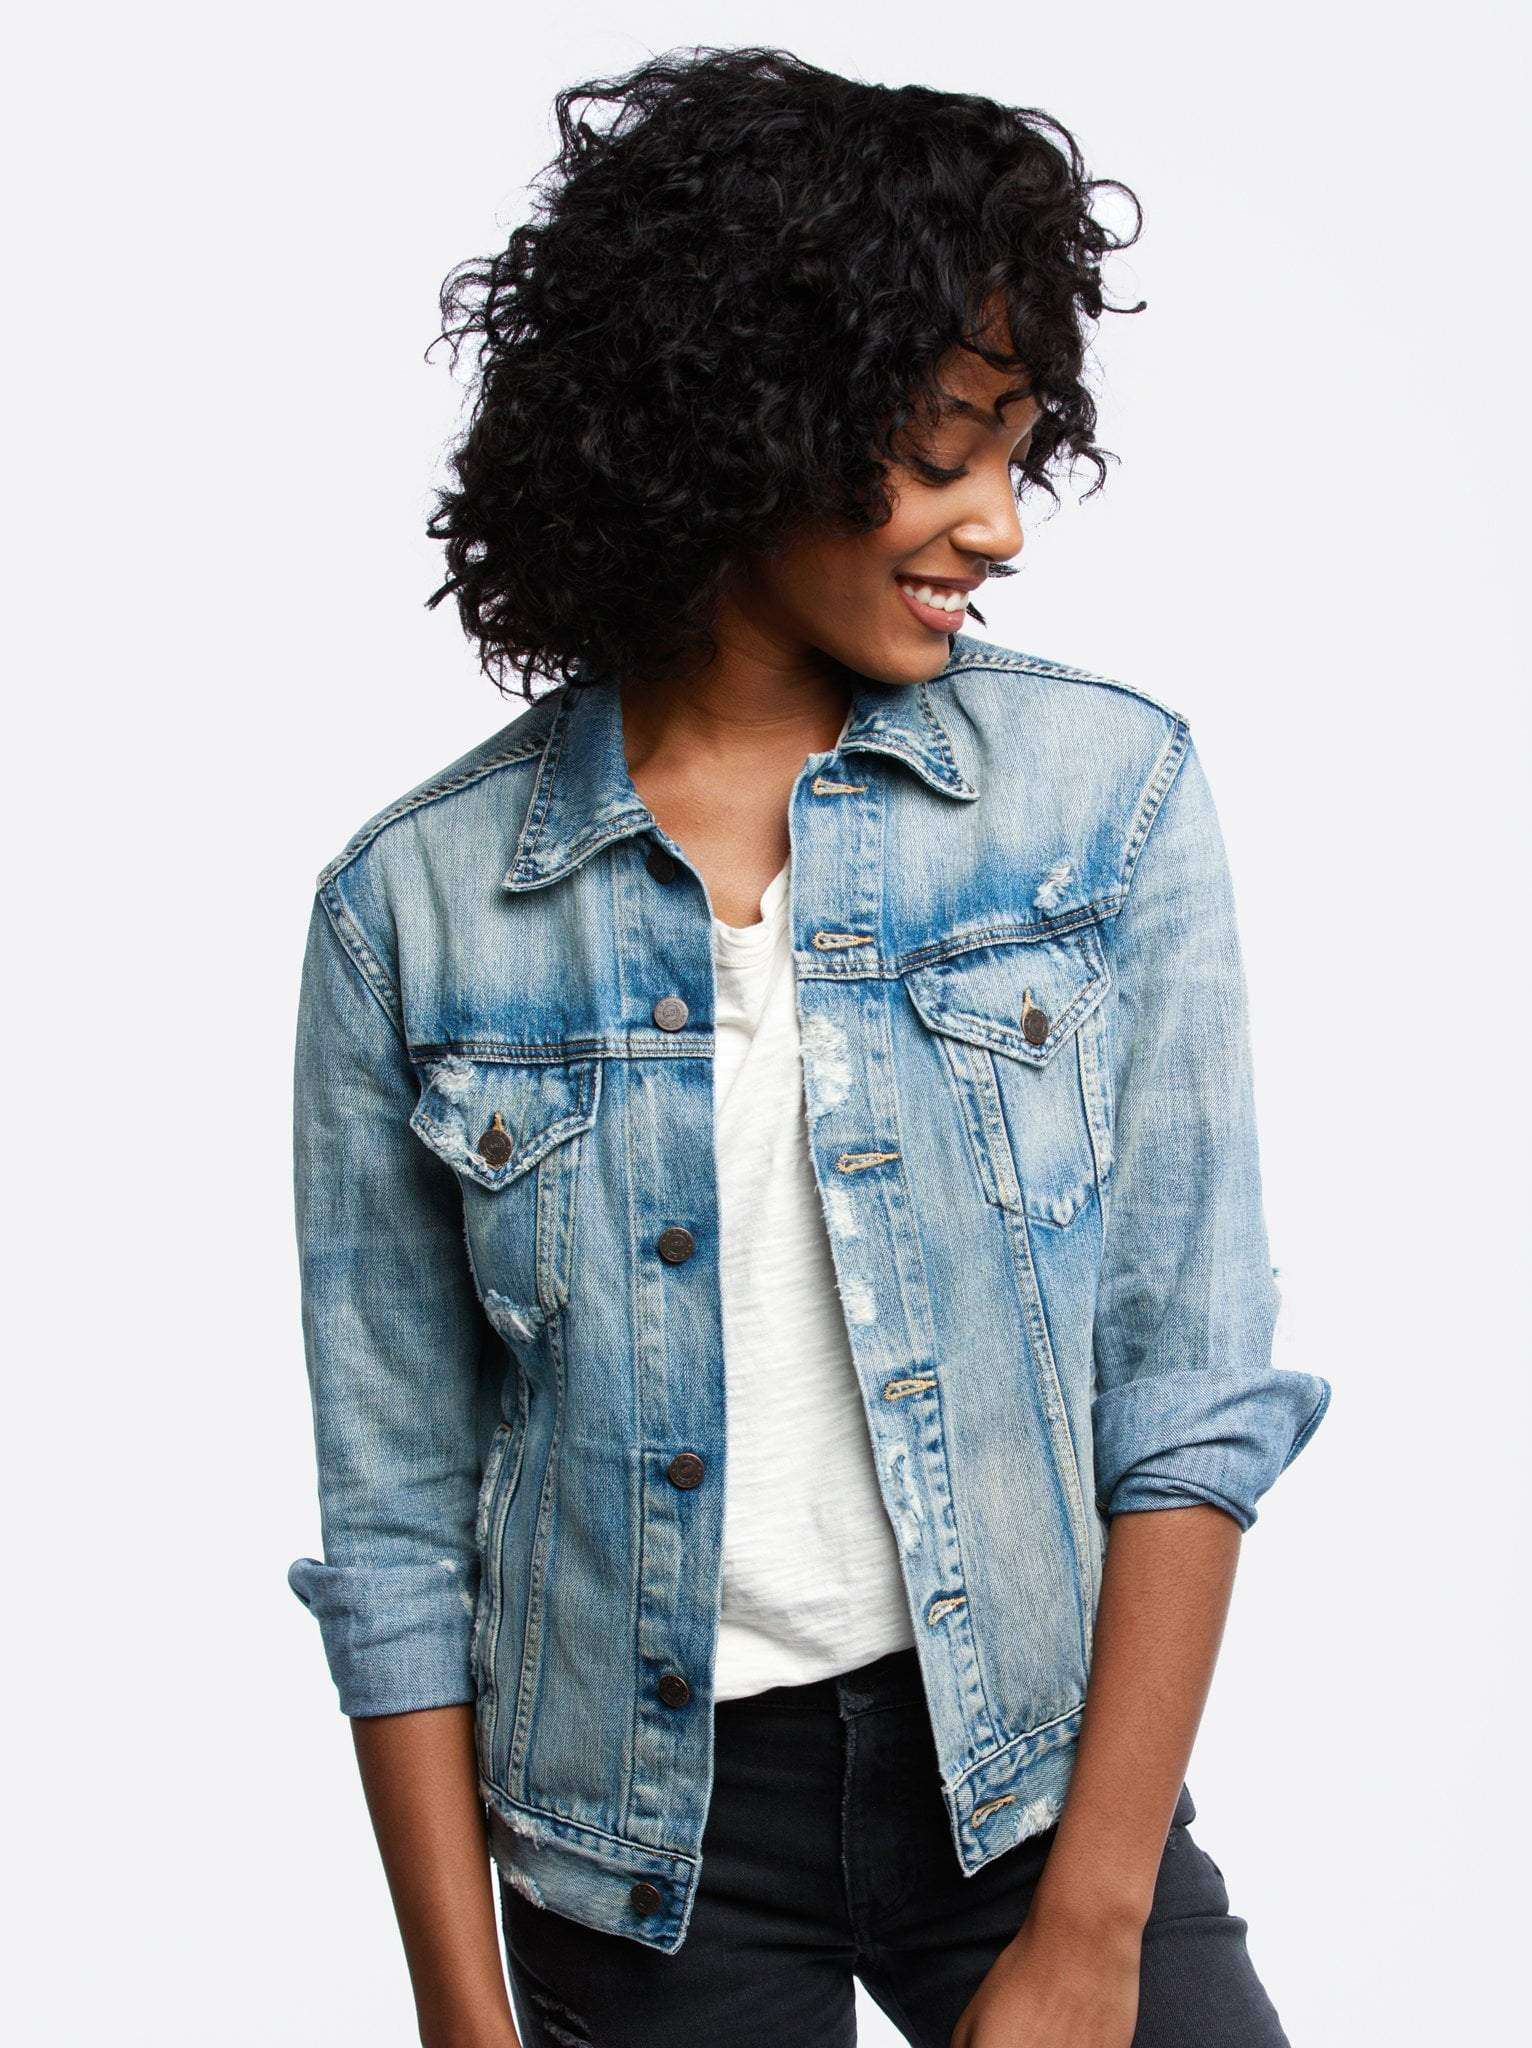 "Distressed Denim Jacket - ABLE | Ethically made by women in Nashville | $125 with code ""KEIRA15"" for 15% offI had to include this jacket because both my Mom and I own it and LOVE it! Anything from ABLE is perfect for Mother's Day. Their clothes, jewelry, shoes… I would include it all if I could!"